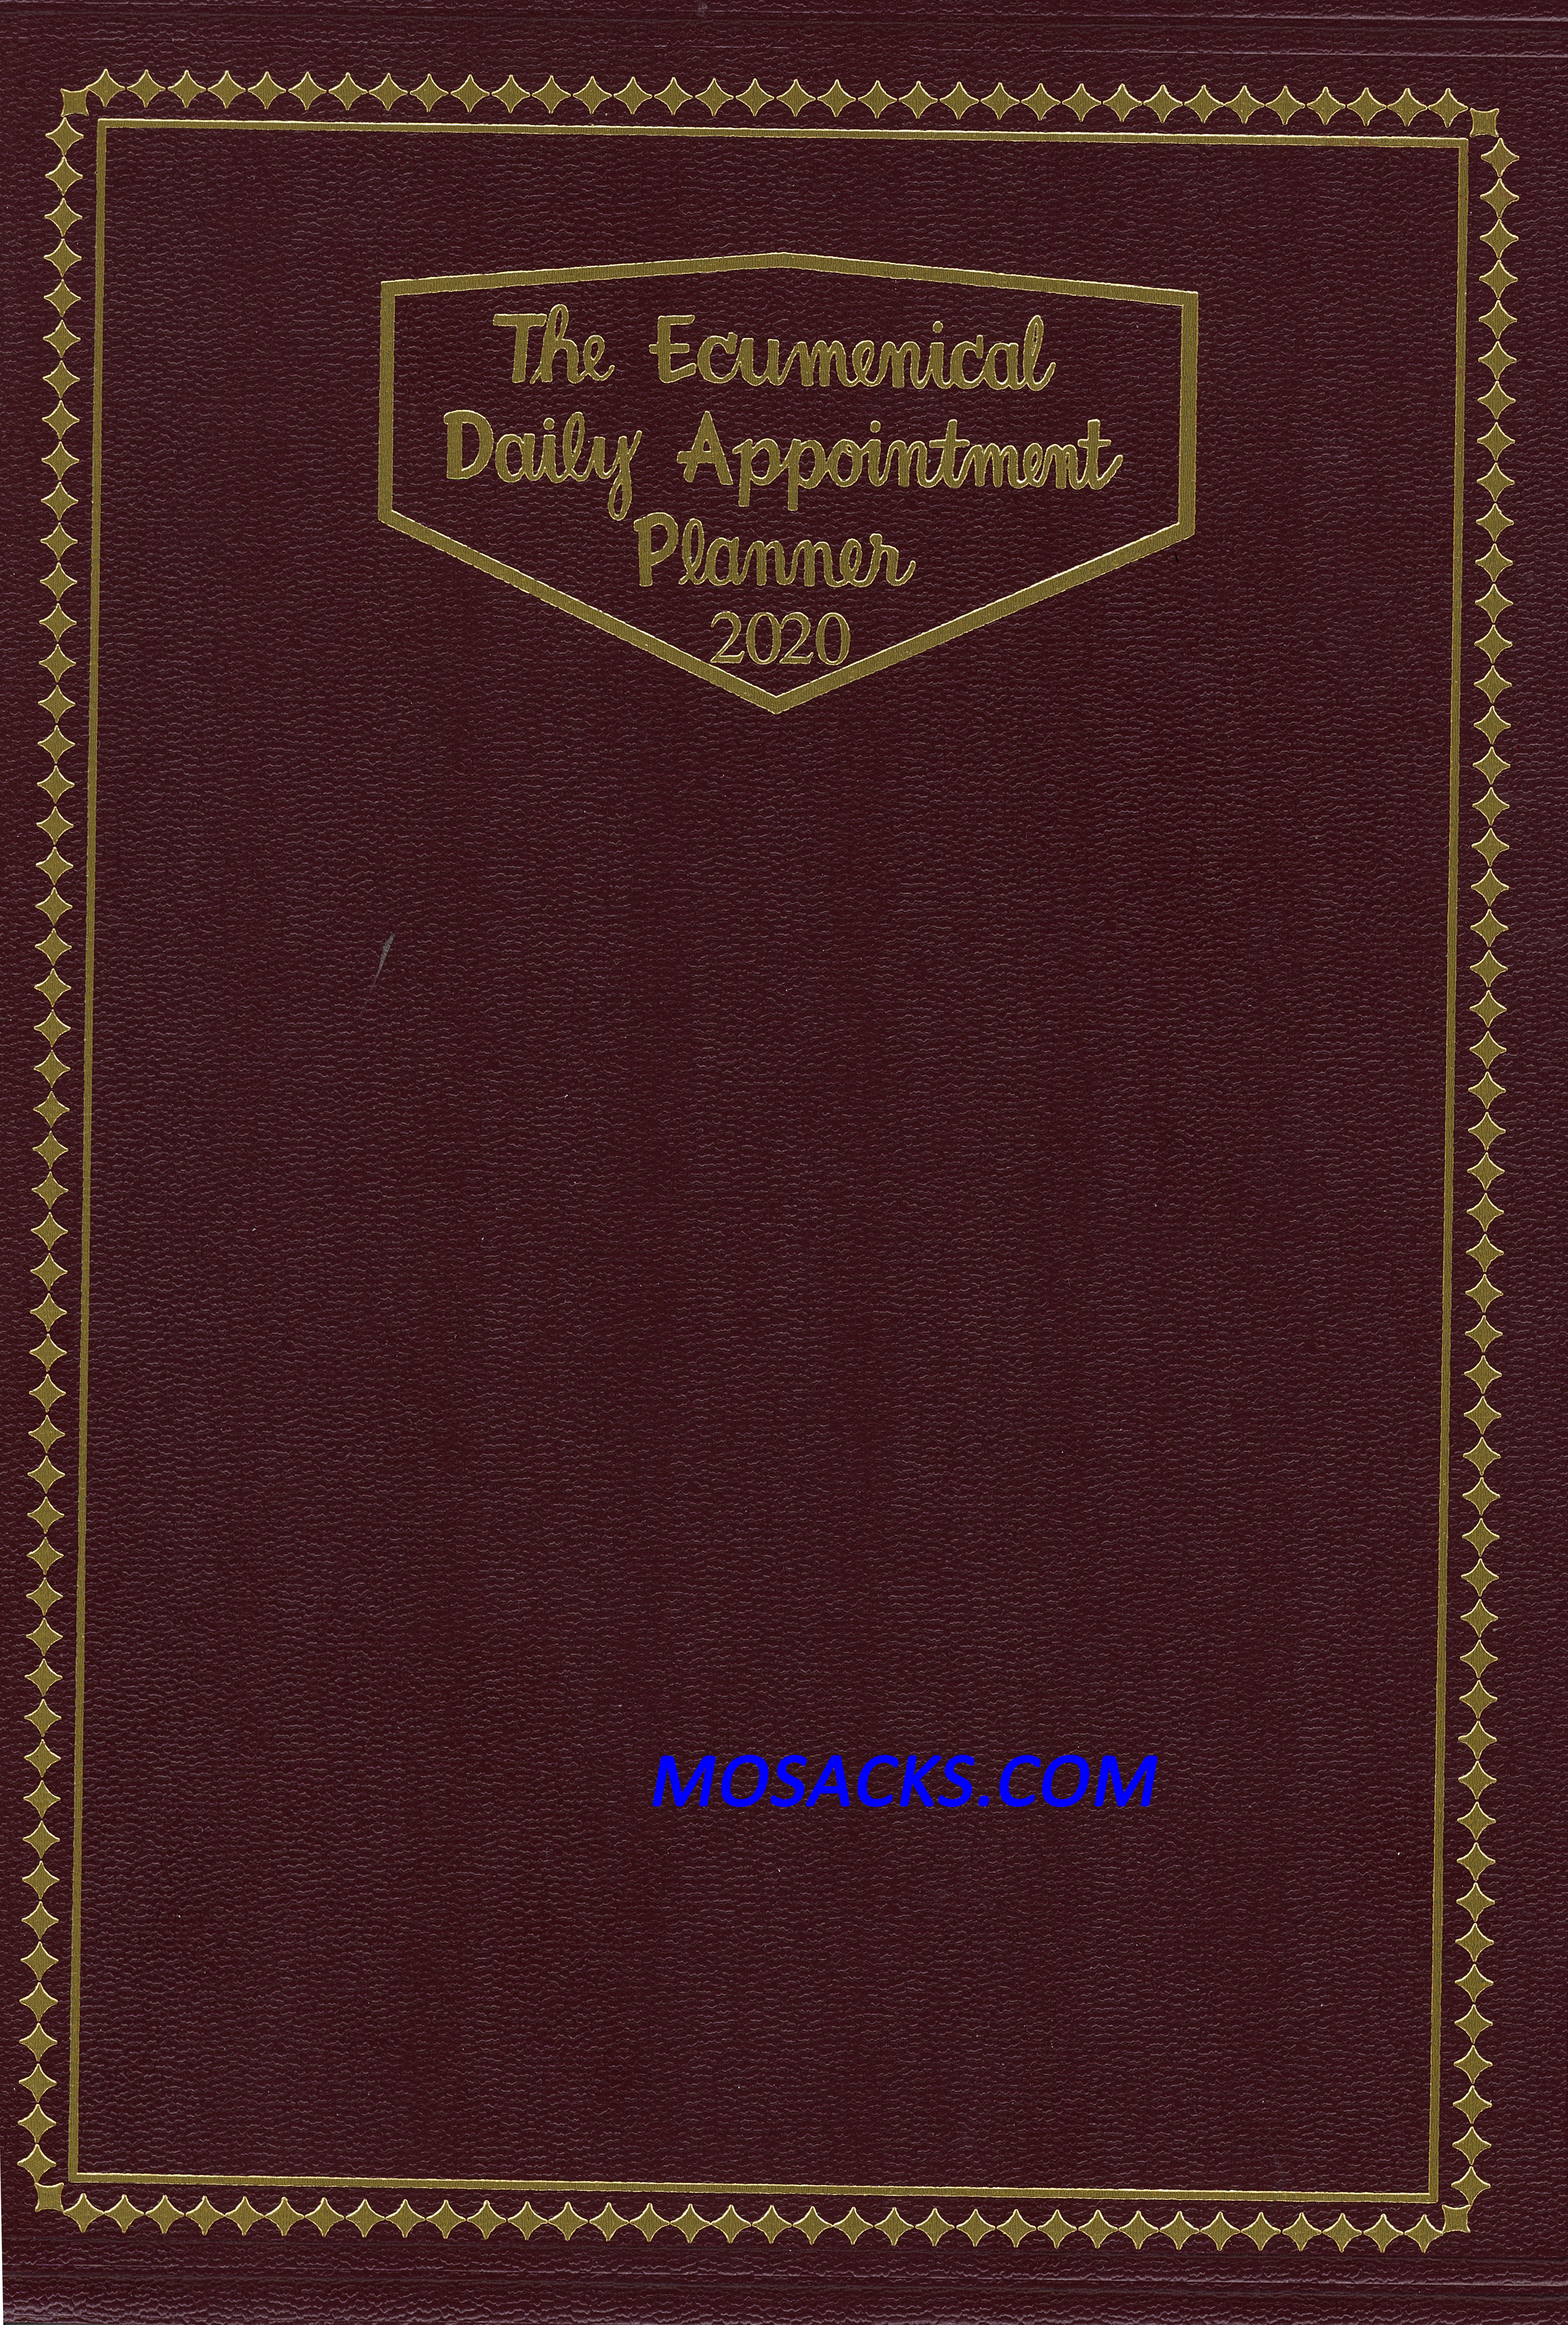 The Ecumenical Daily Appointment Planner 2020